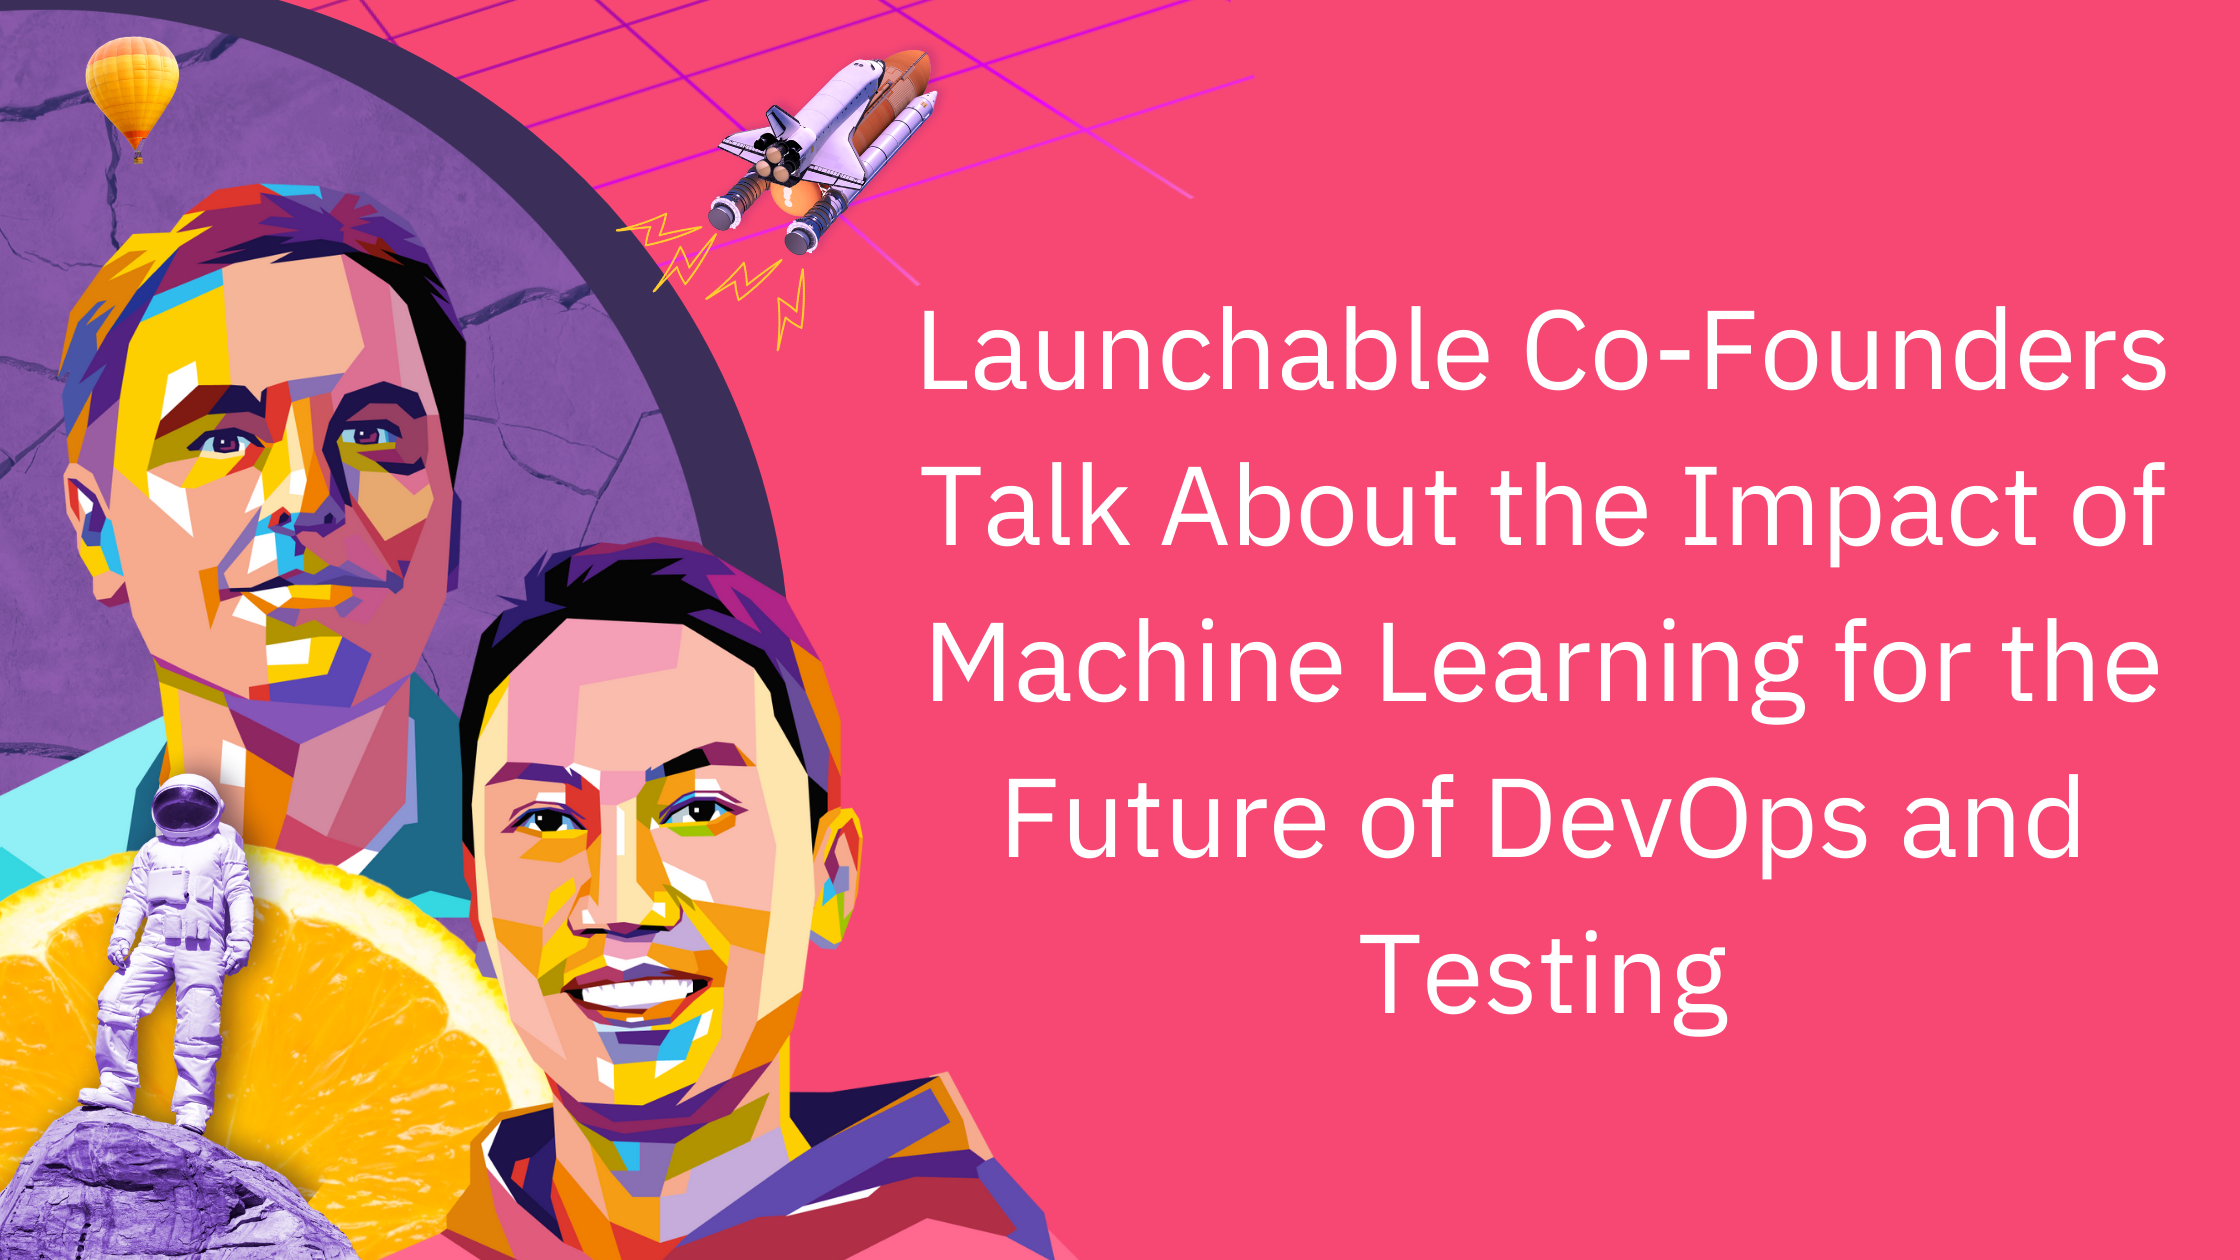 Launchable Co-Founders Talk About the Impact of Machine Learning for the Future of DevOps and Testing